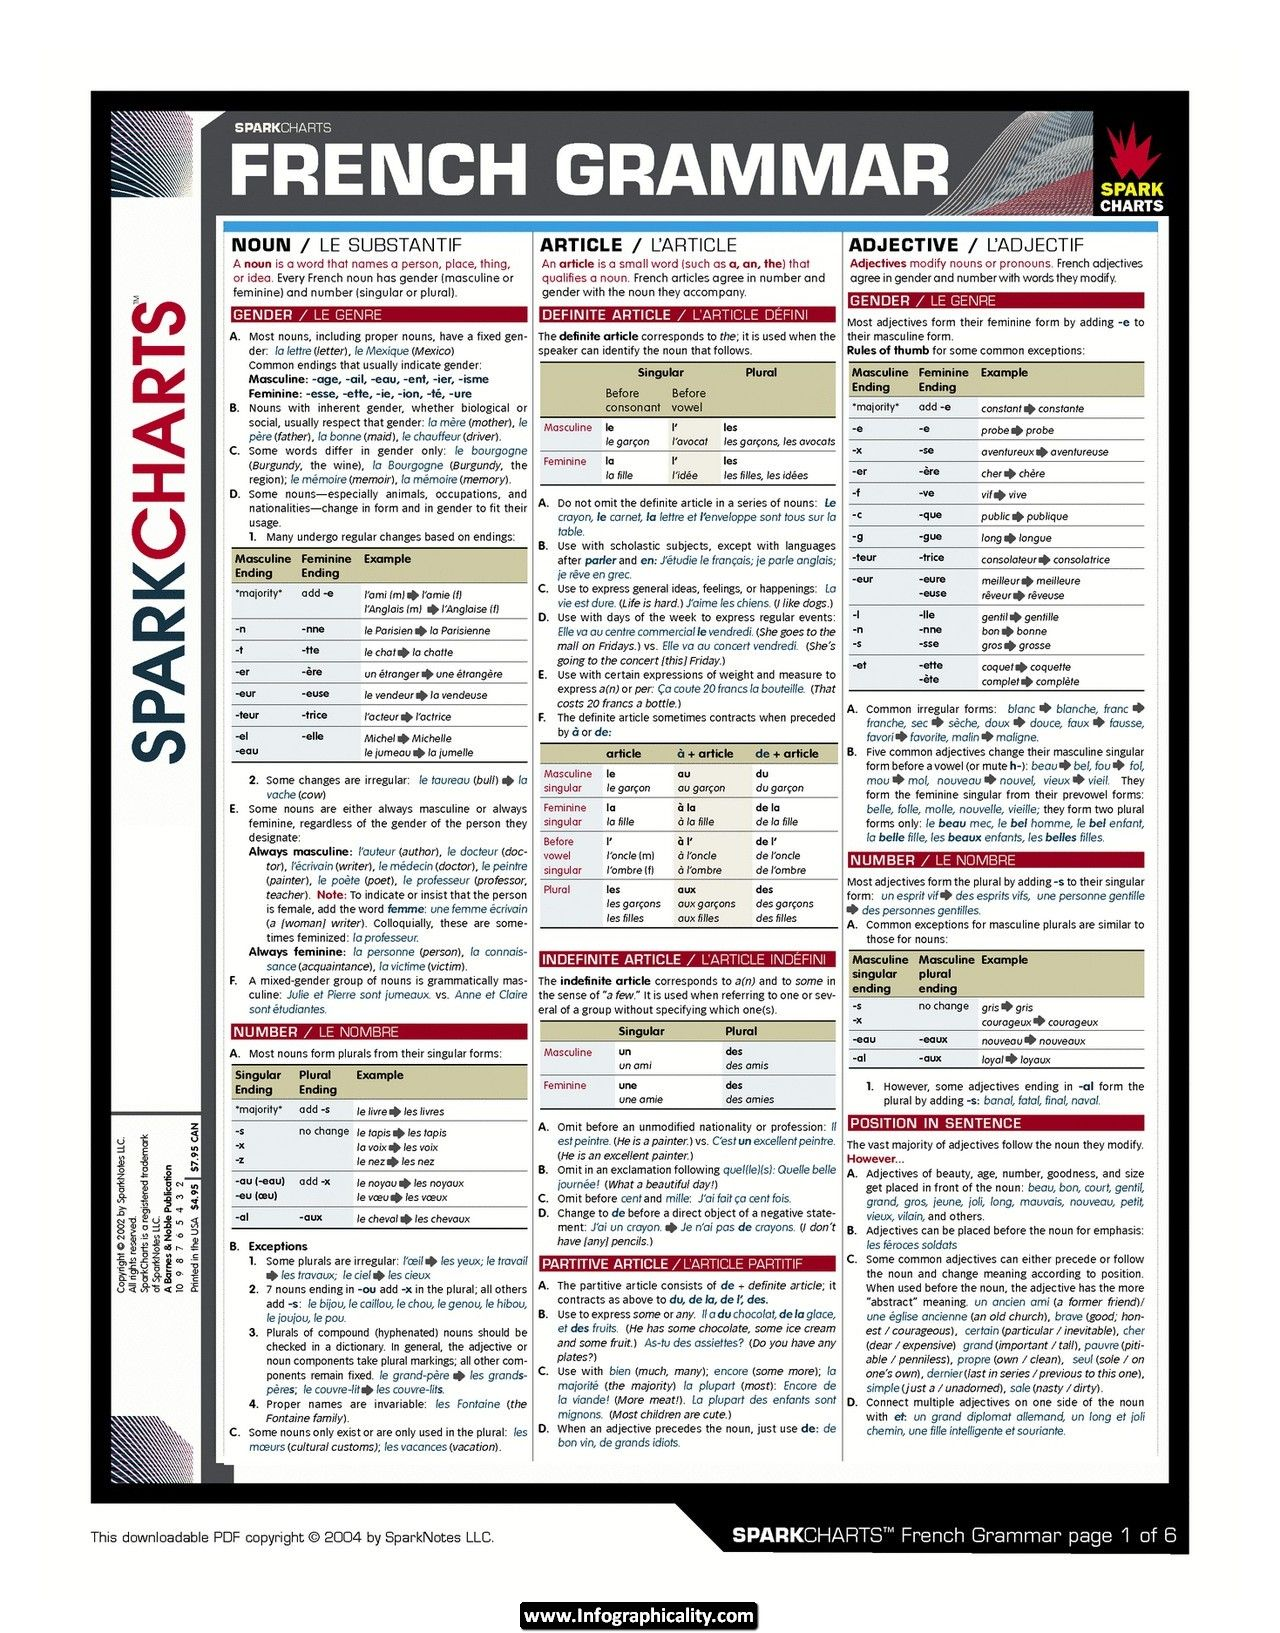 French grammar cheat sheet french beginners schoolfy pinterest french grammar cheat sheet fandeluxe